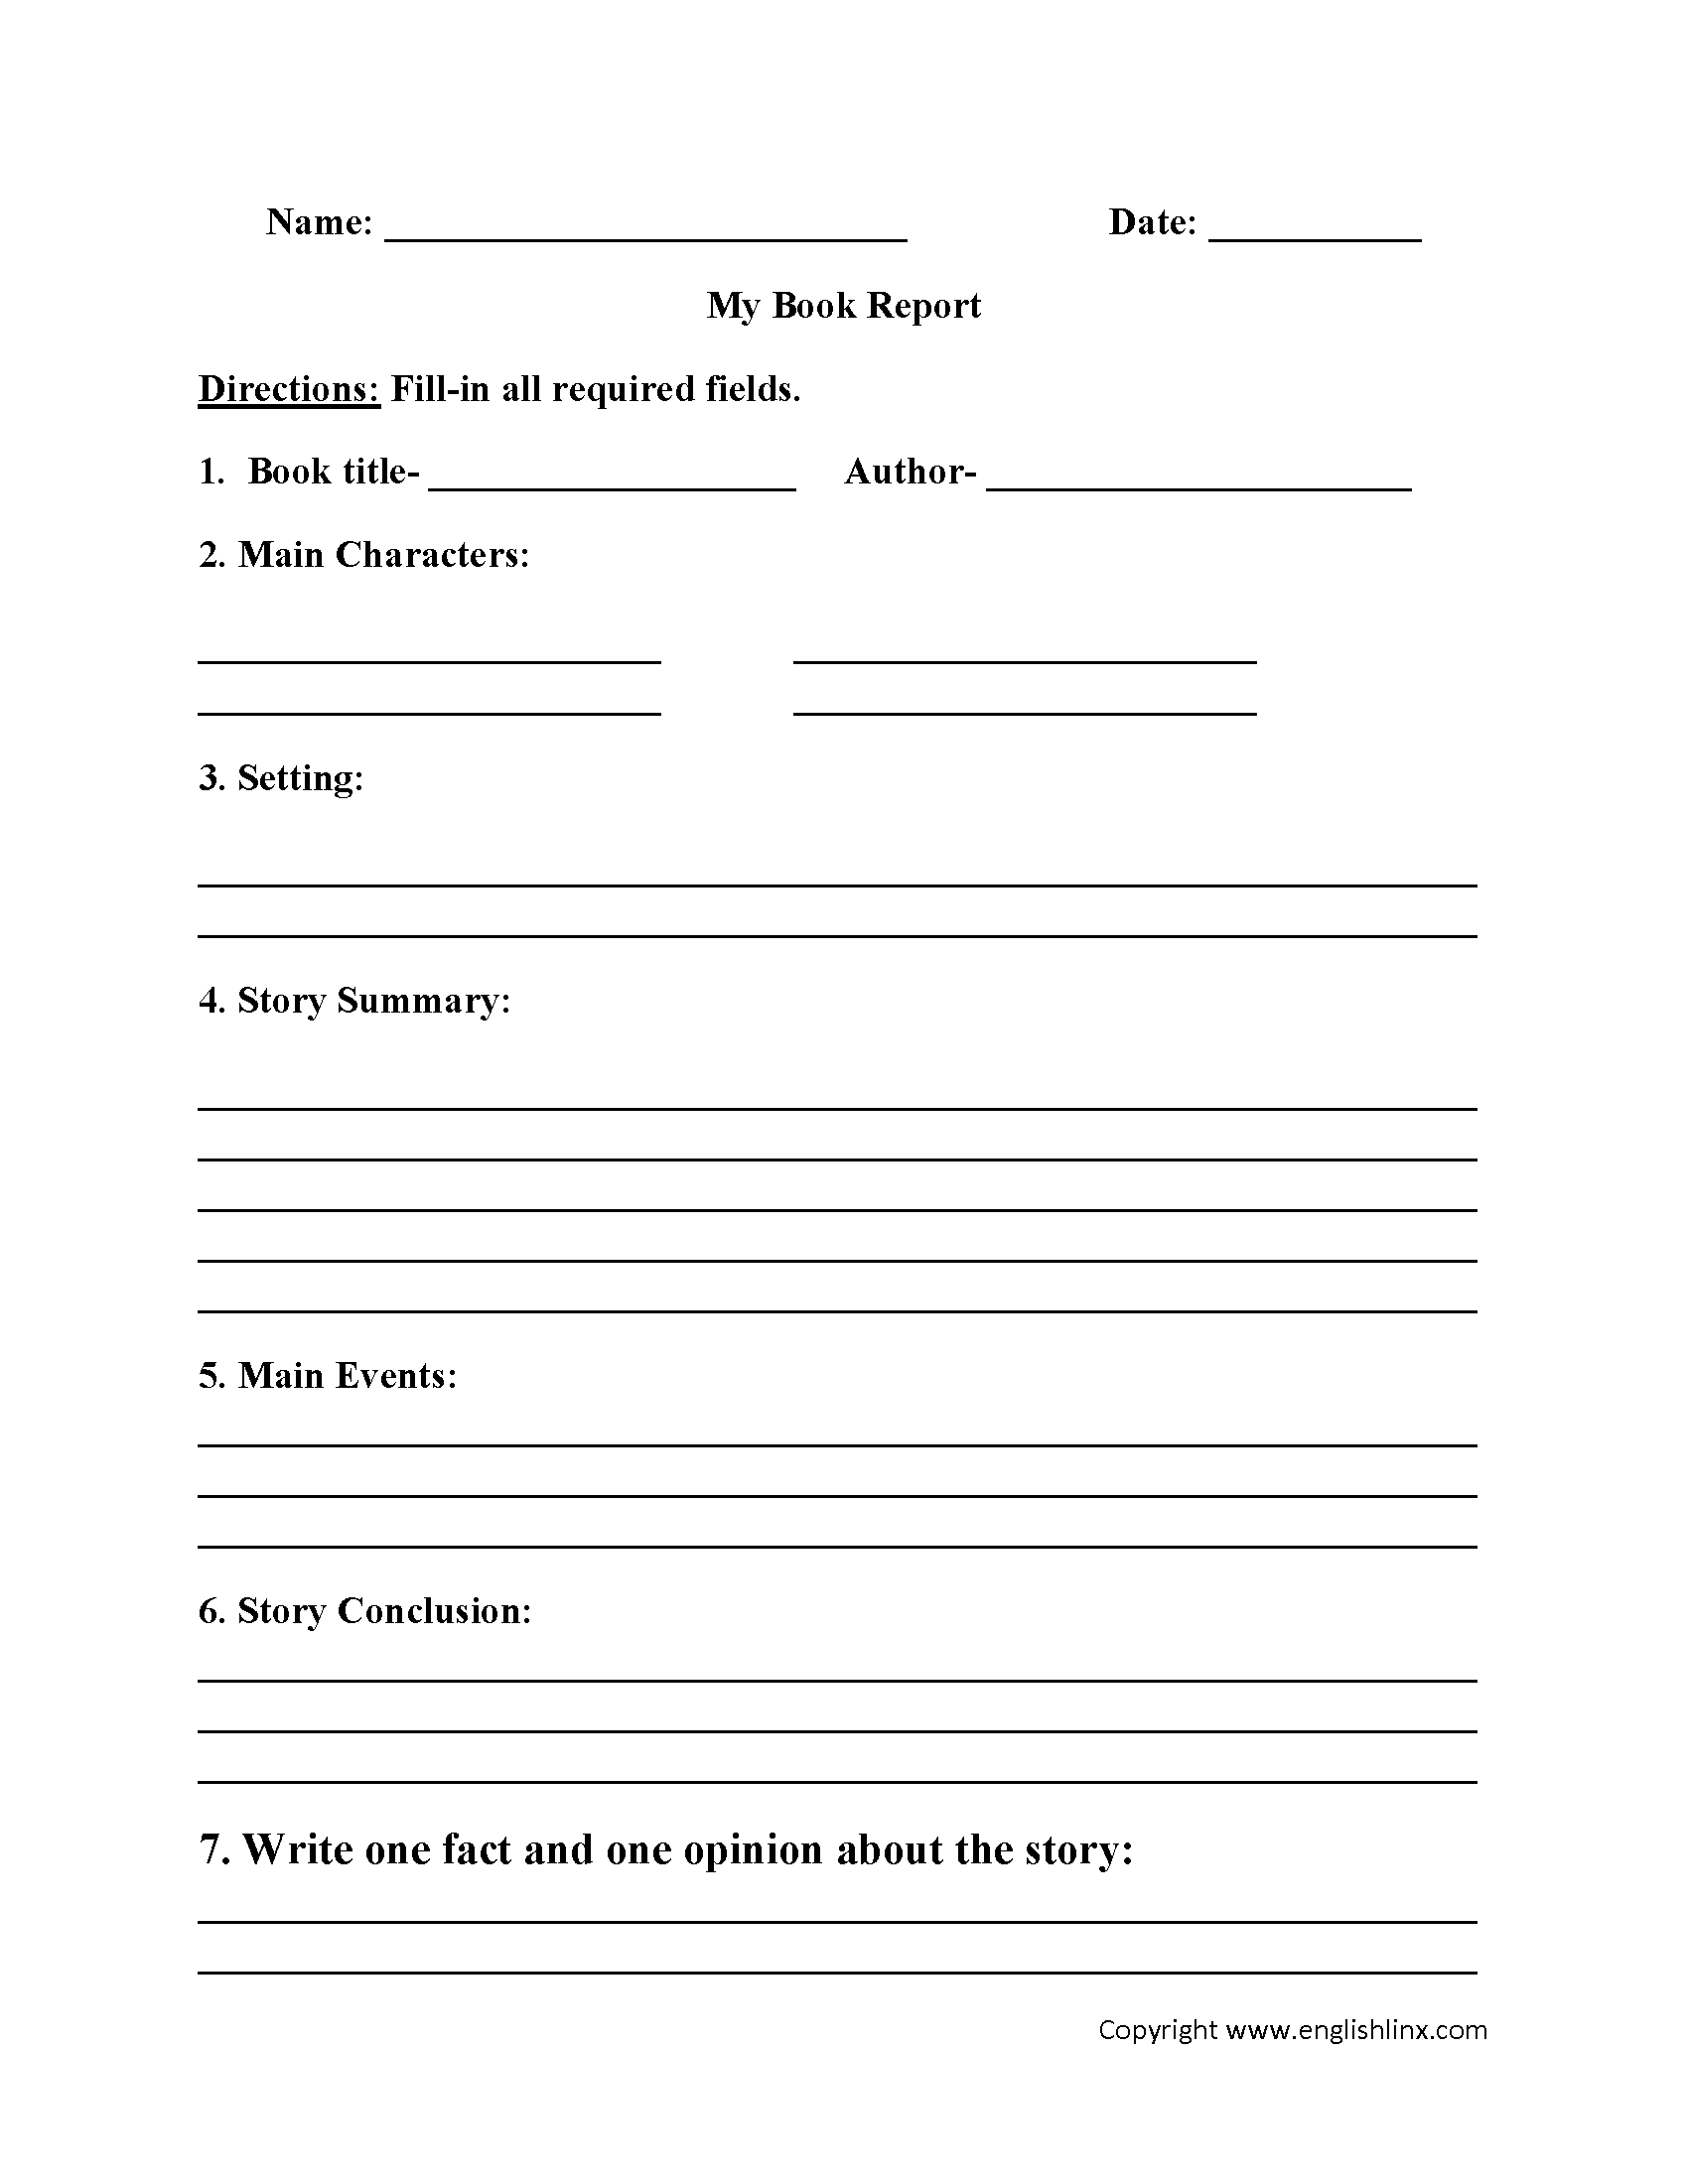 Englishlinx | Book Report Worksheets - Free Printable Book Report Forms For Second Grade